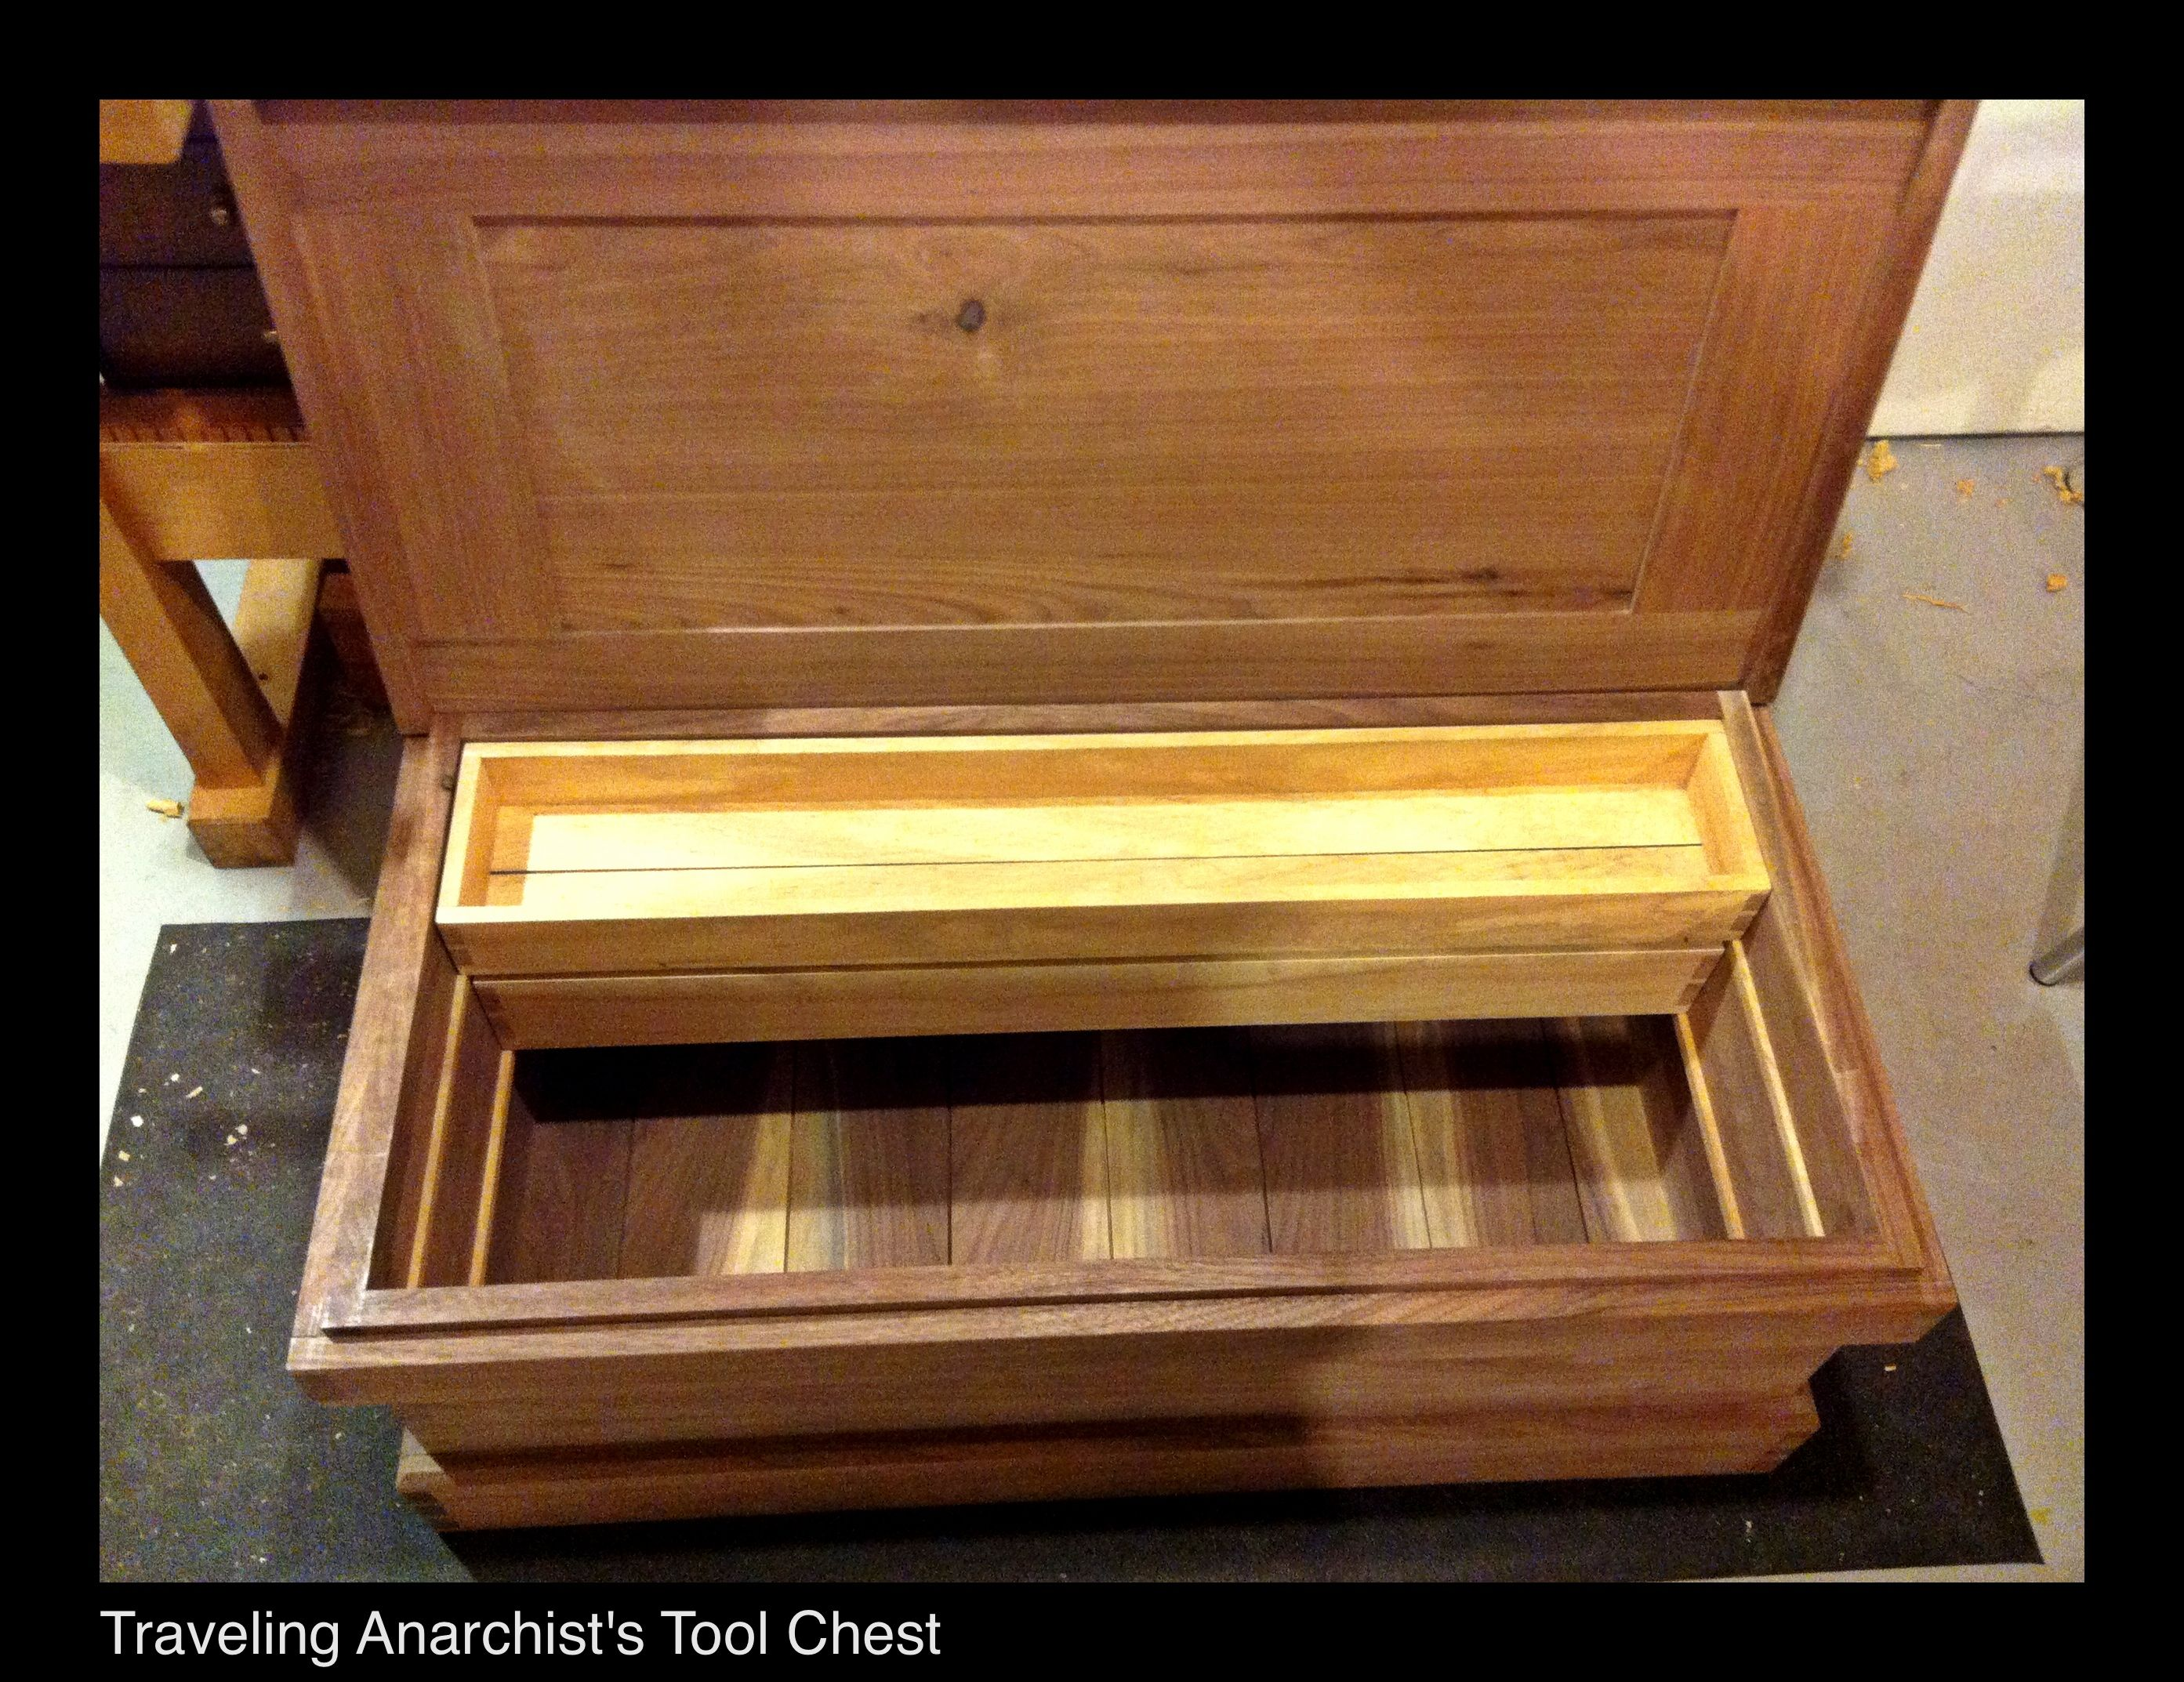 Tool Chest Anarchist s Traveling Tool Chest Nice